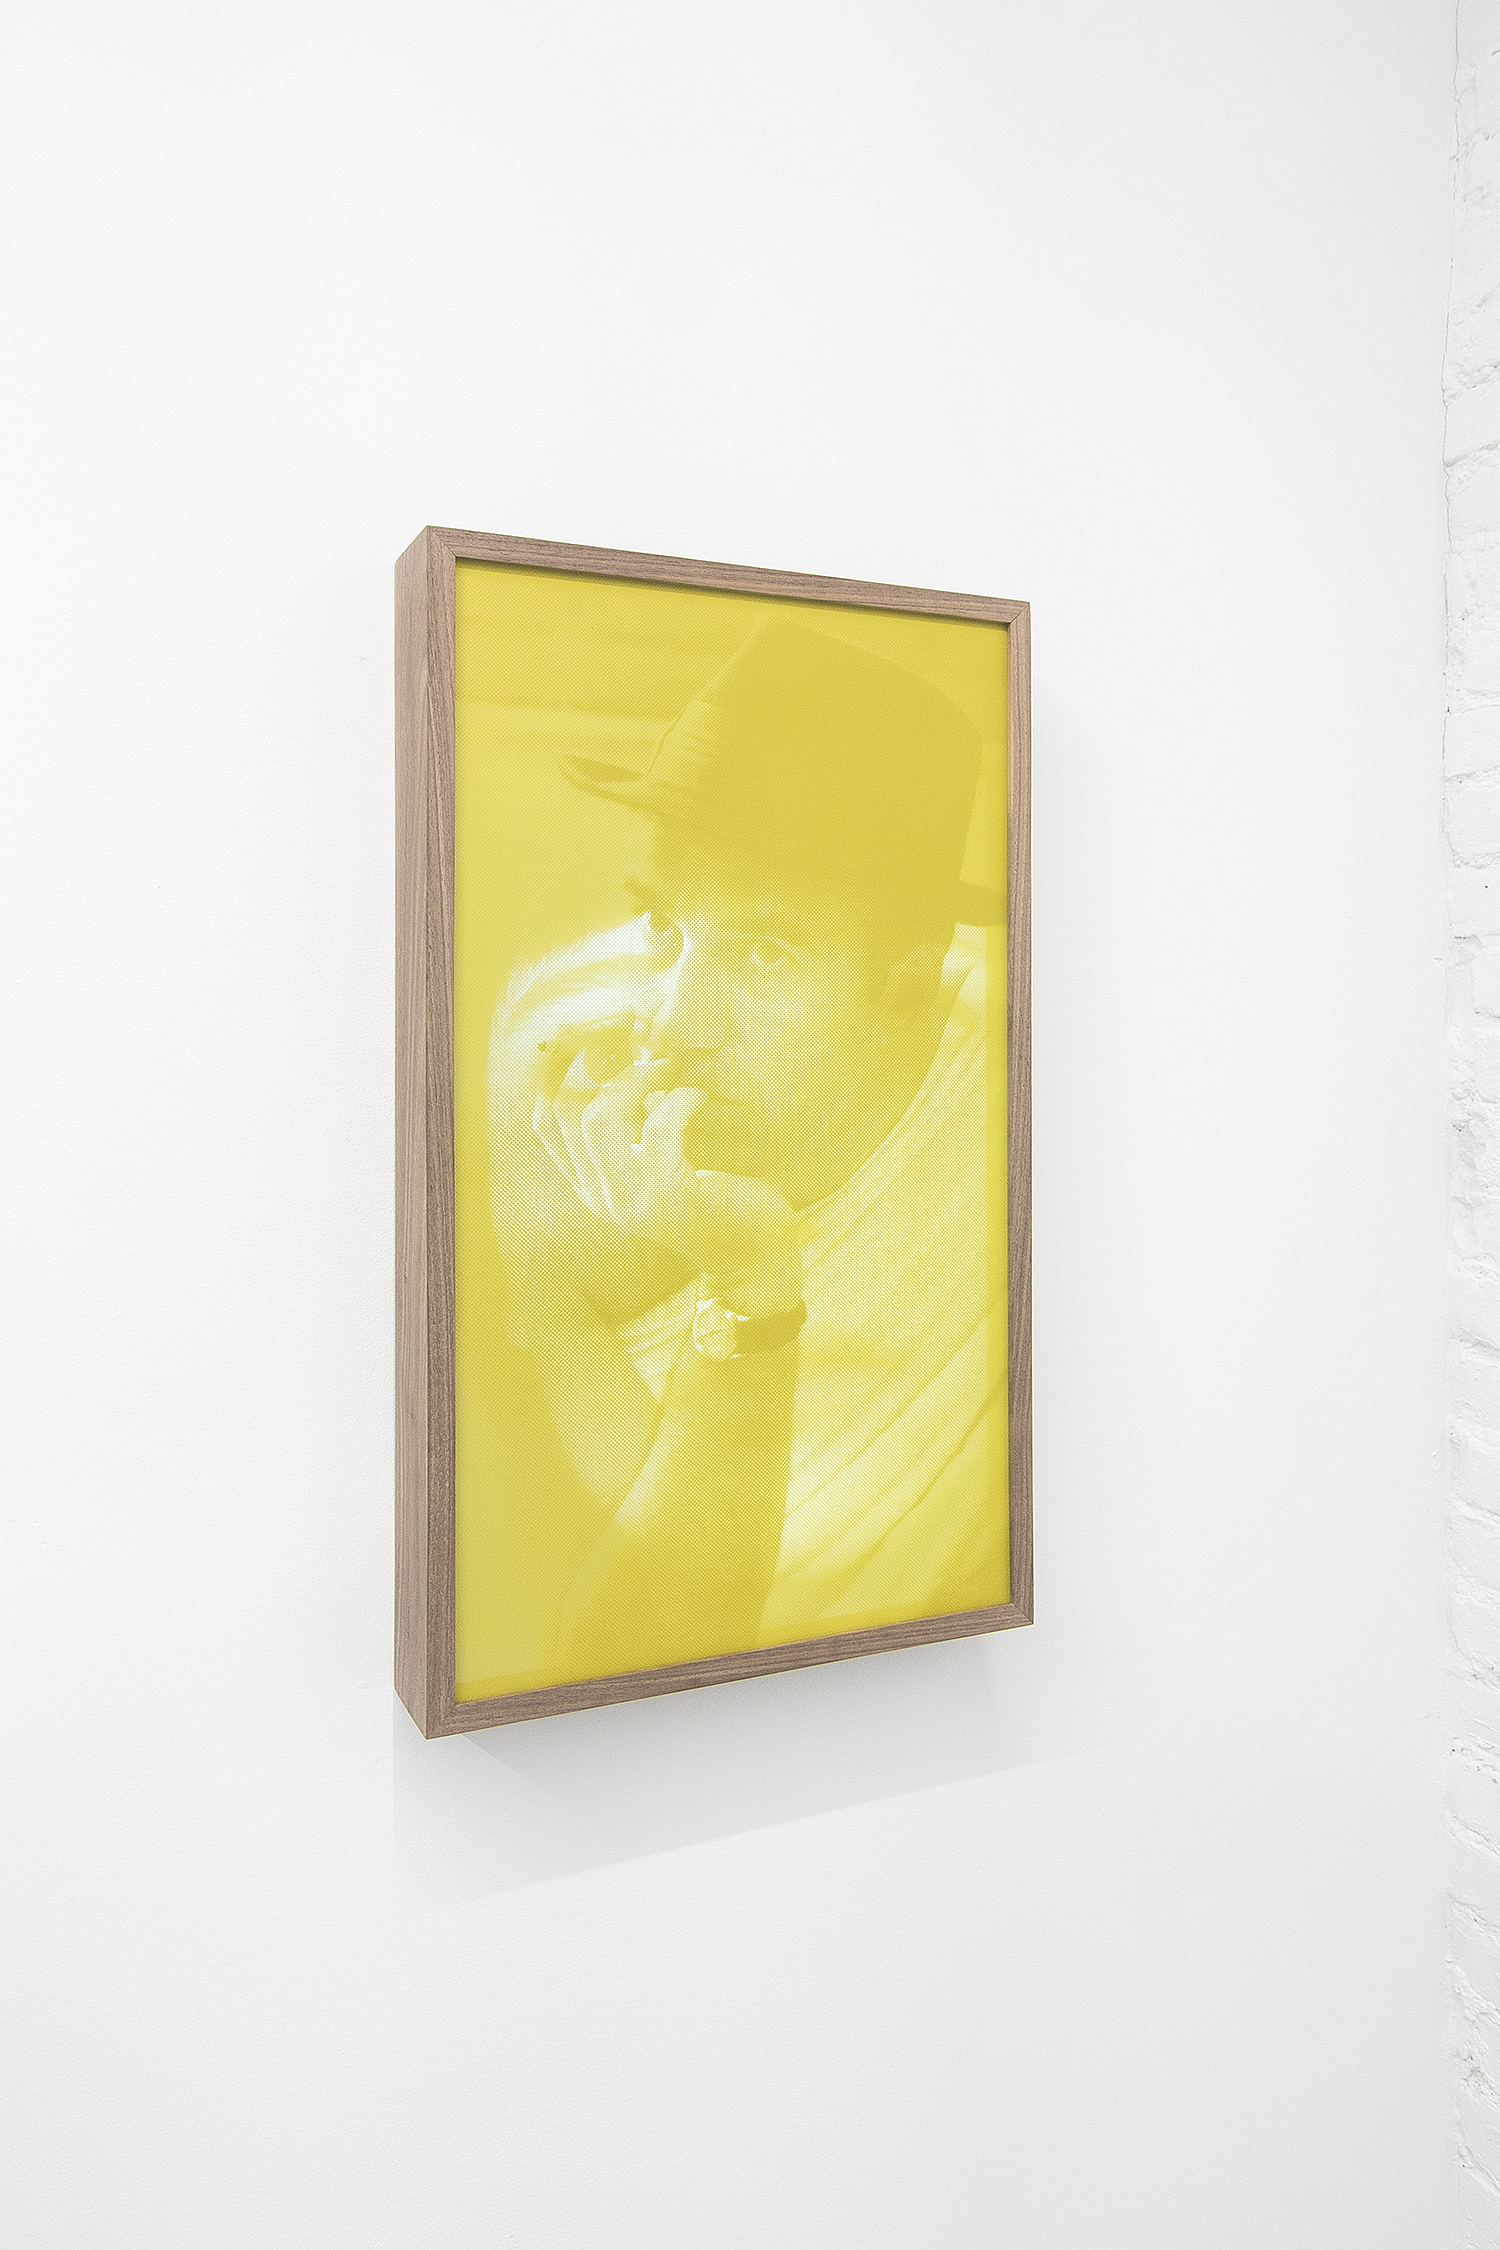 "I prefer you blonde. - I prefer you without a hat,  2019  Yellow silkscreen fabric, epoxic silkscreen on plexiglass, 32"" professional display and wood. Video: H264, 1920 x 1200px, 11:43 min. loop. 43.2 x 73.6 x 8.5 cm"